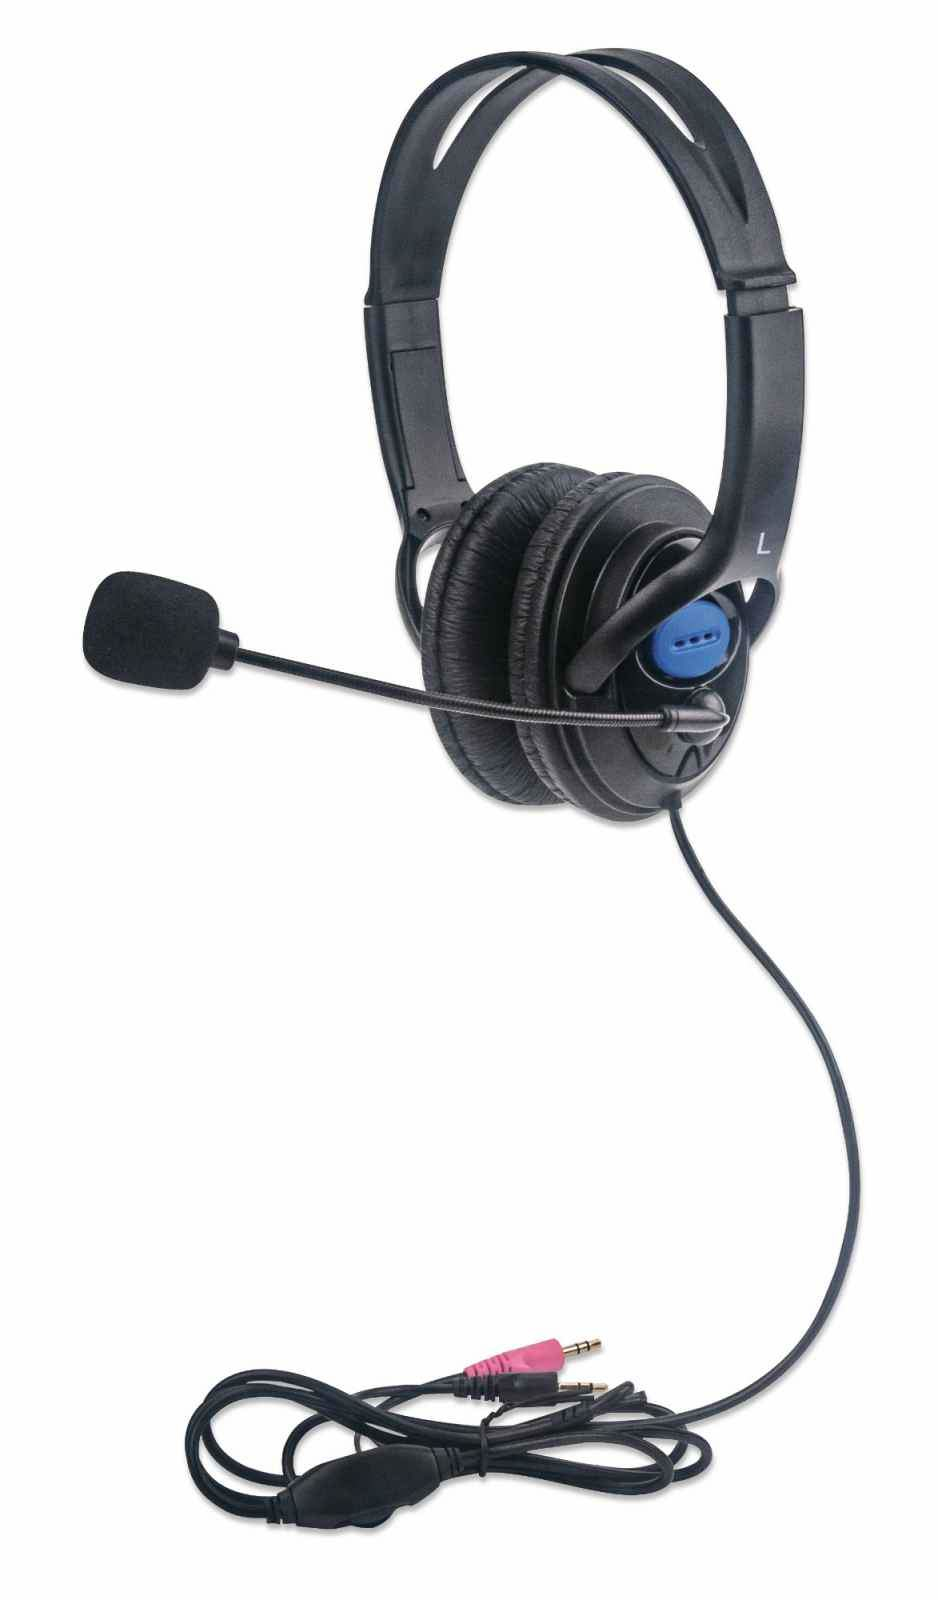 Manhattan Stereo Headset (Promo), Lightweight, adjustable microphone, in-line volume control, padded cloth ear cushions, two 3.5mm jack input plugs, cable 2m, Black, 3 year warranty, Box